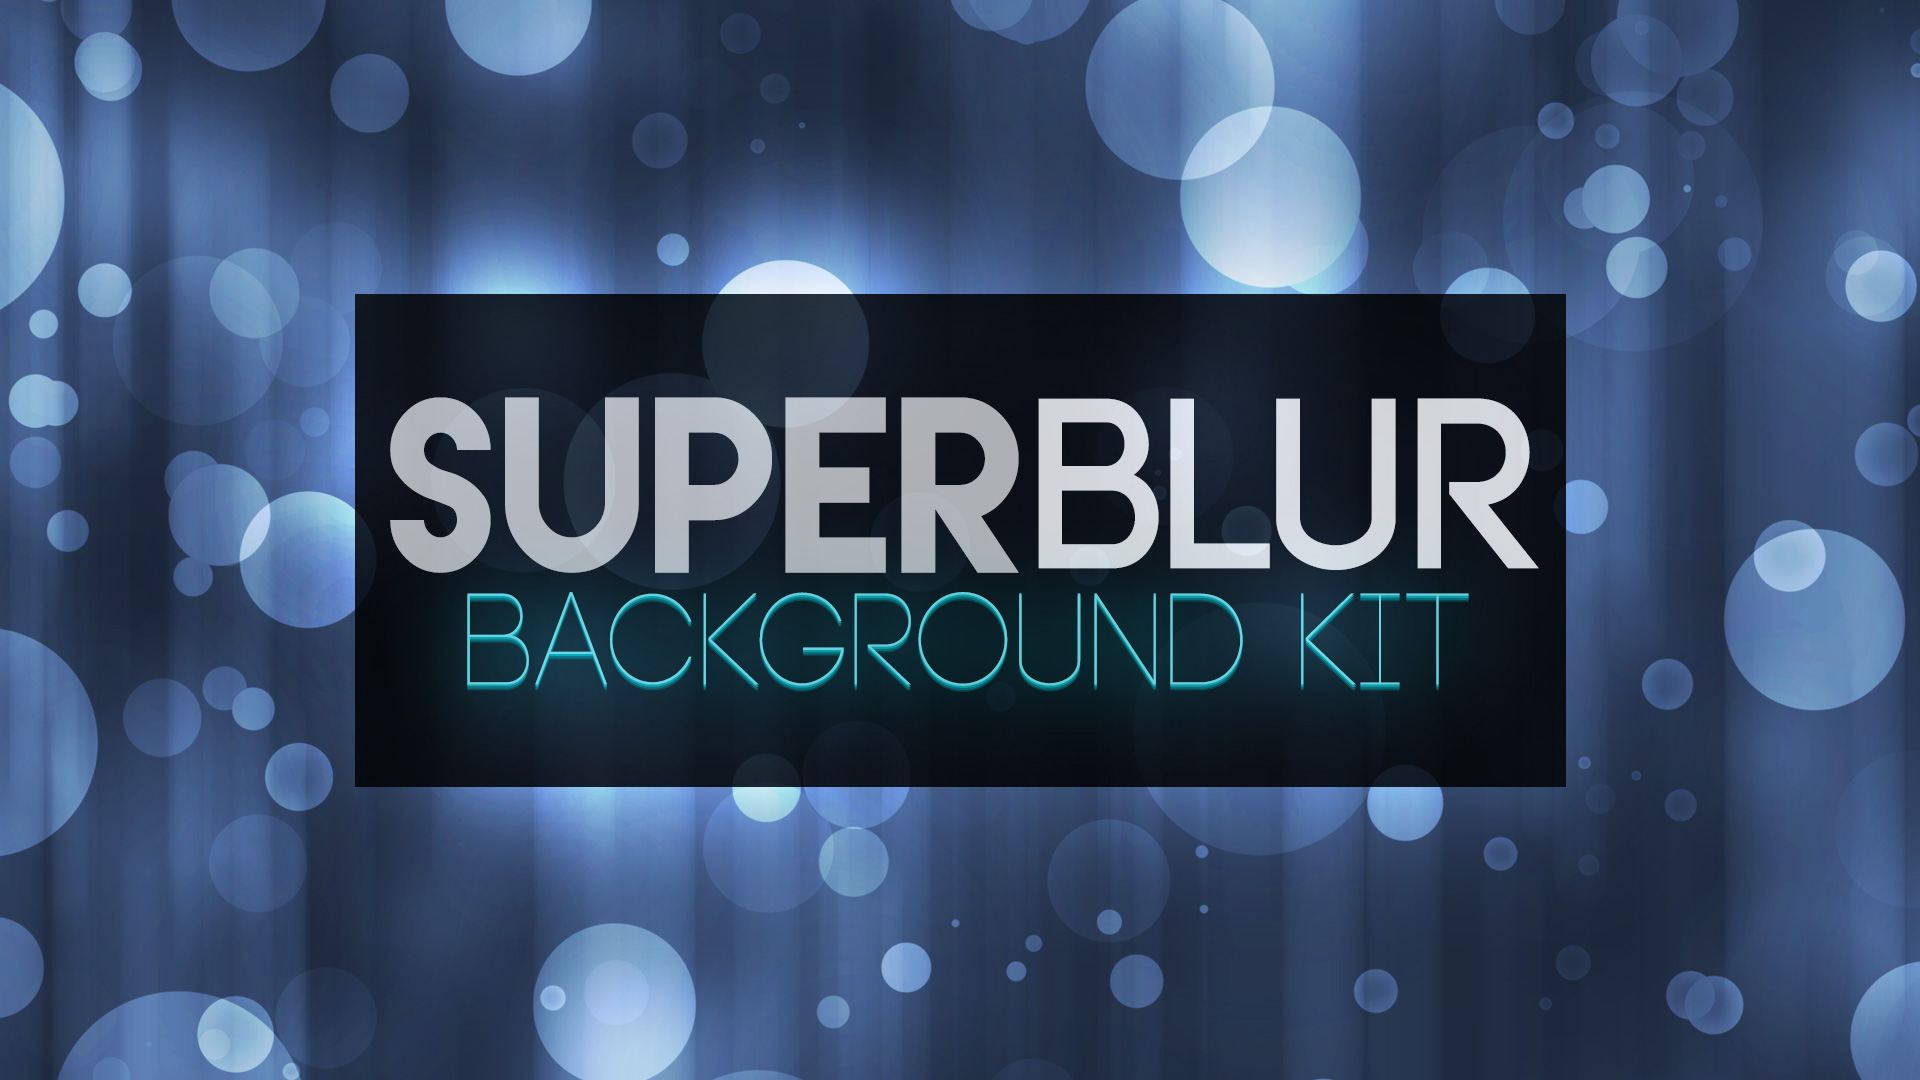 SuperBlur Background Kit